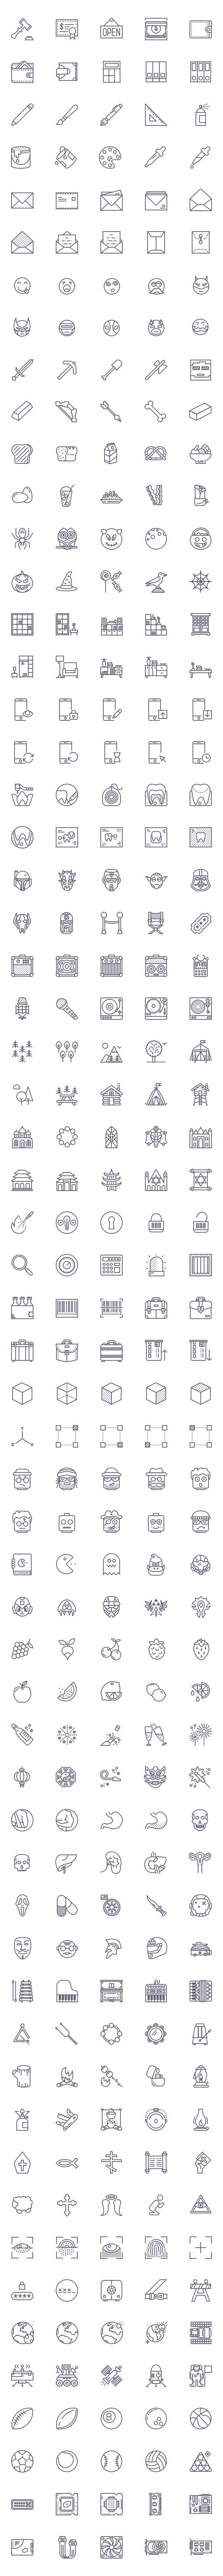 Free Outline and Solid Icons - AI, PSD and Sketch (300 Icons)